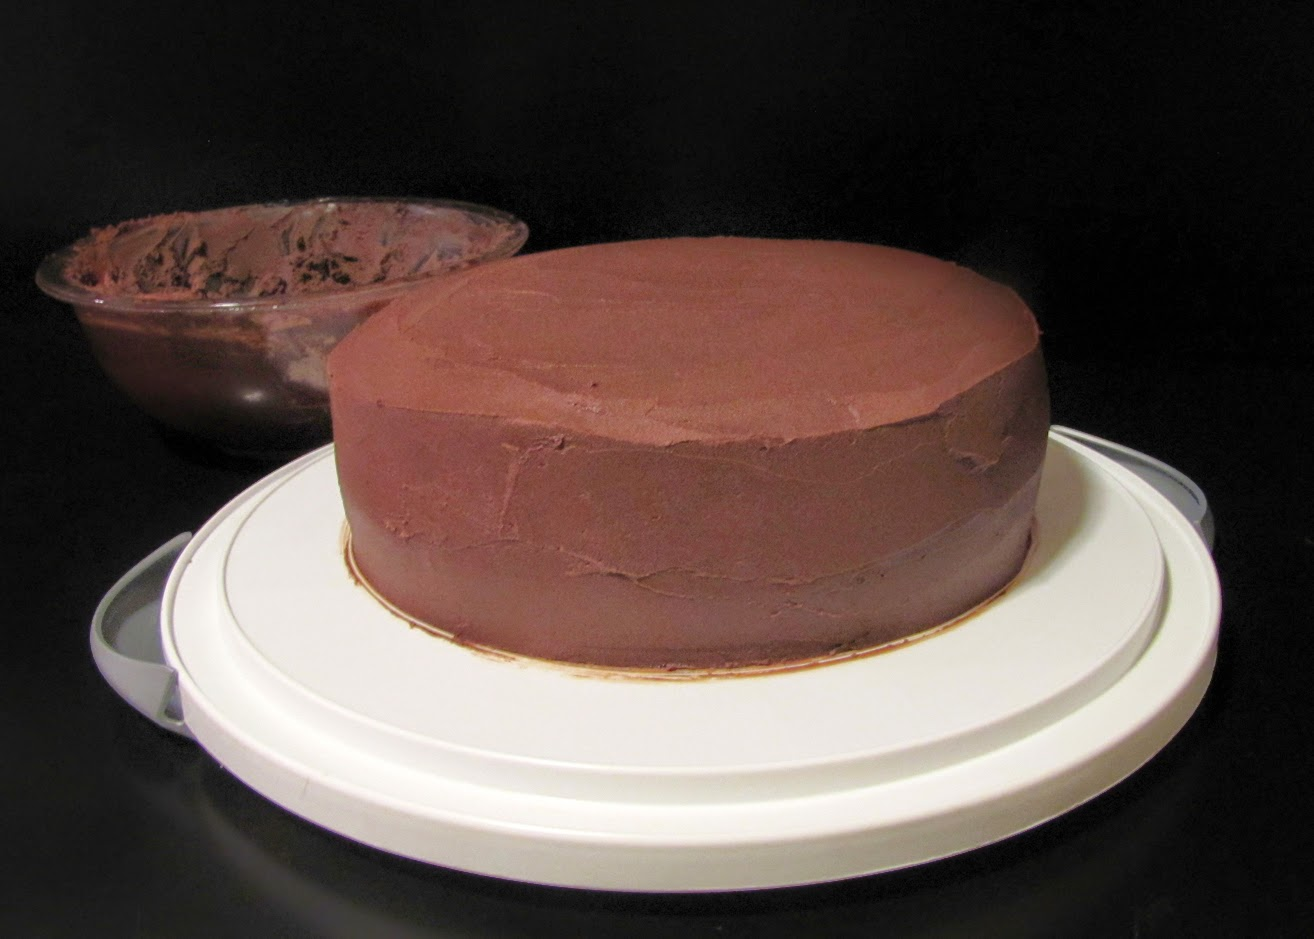 ... in Here: Chocolate Stout Layer Cake with Chocolate Frosting, Take 2